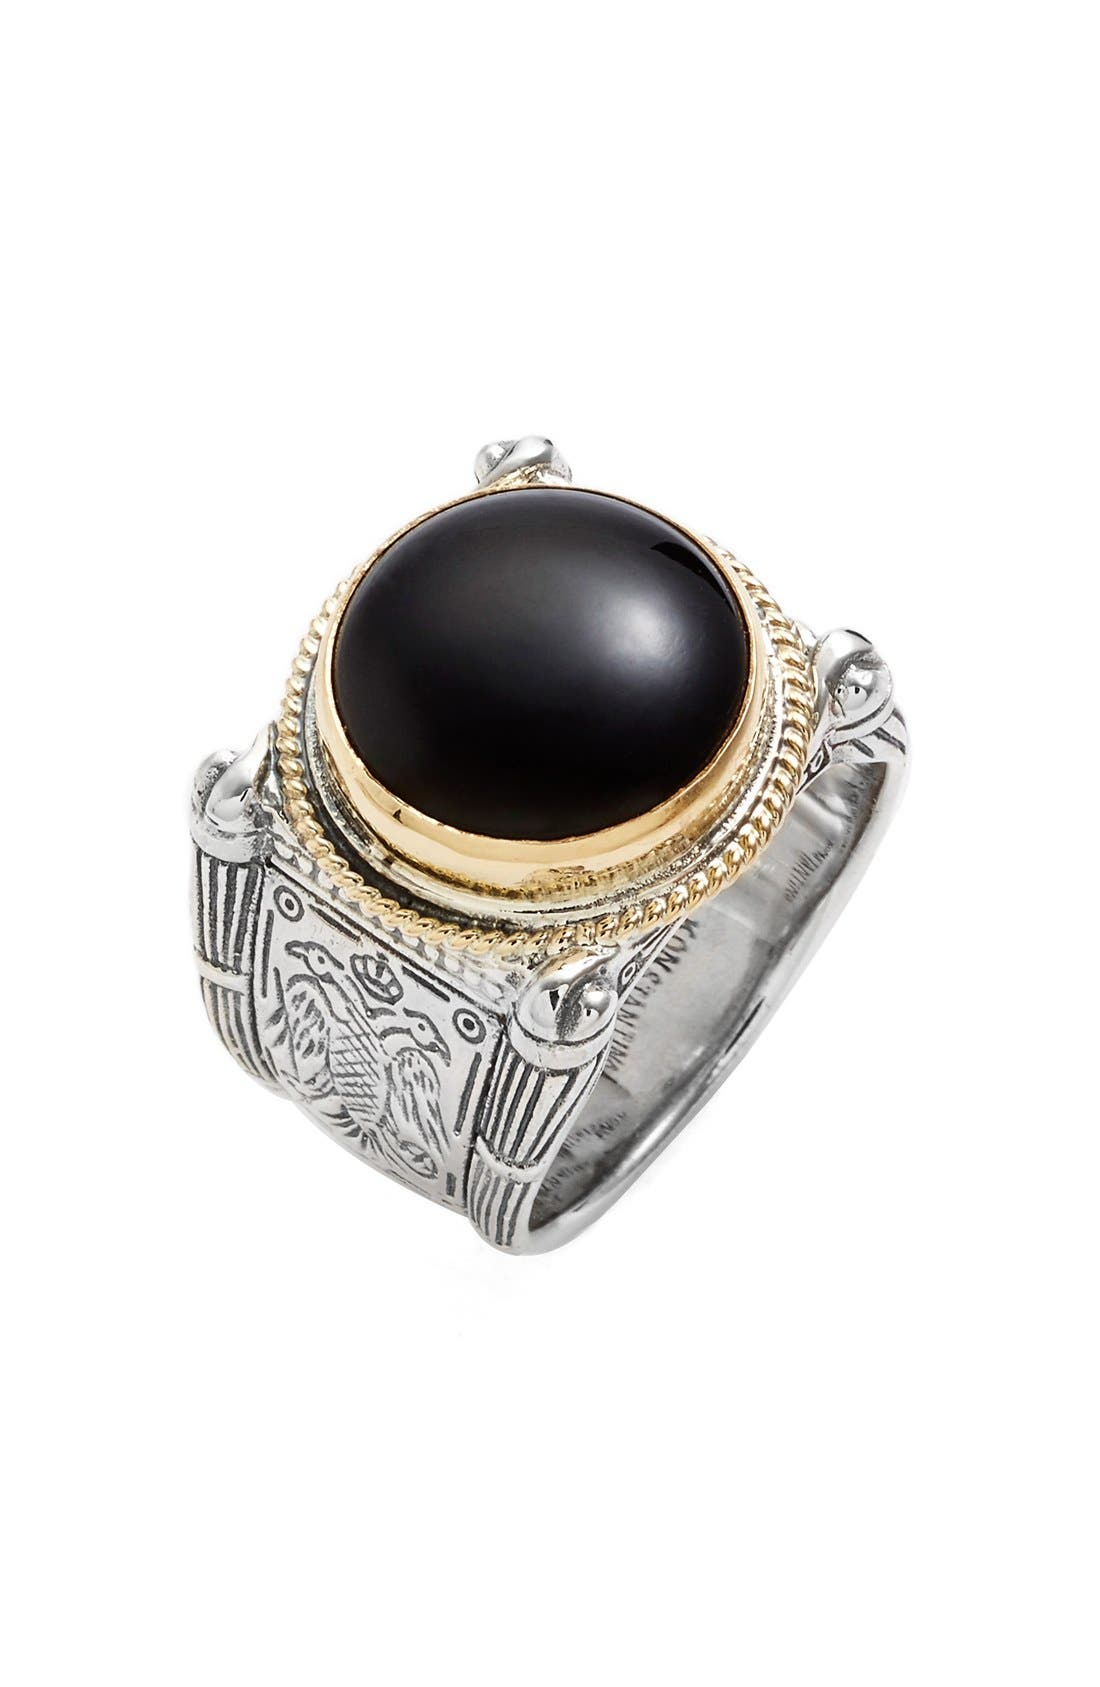 Alternate Image 1 Selected - Konstantino 'Minos' Etched Black Onyx Ring